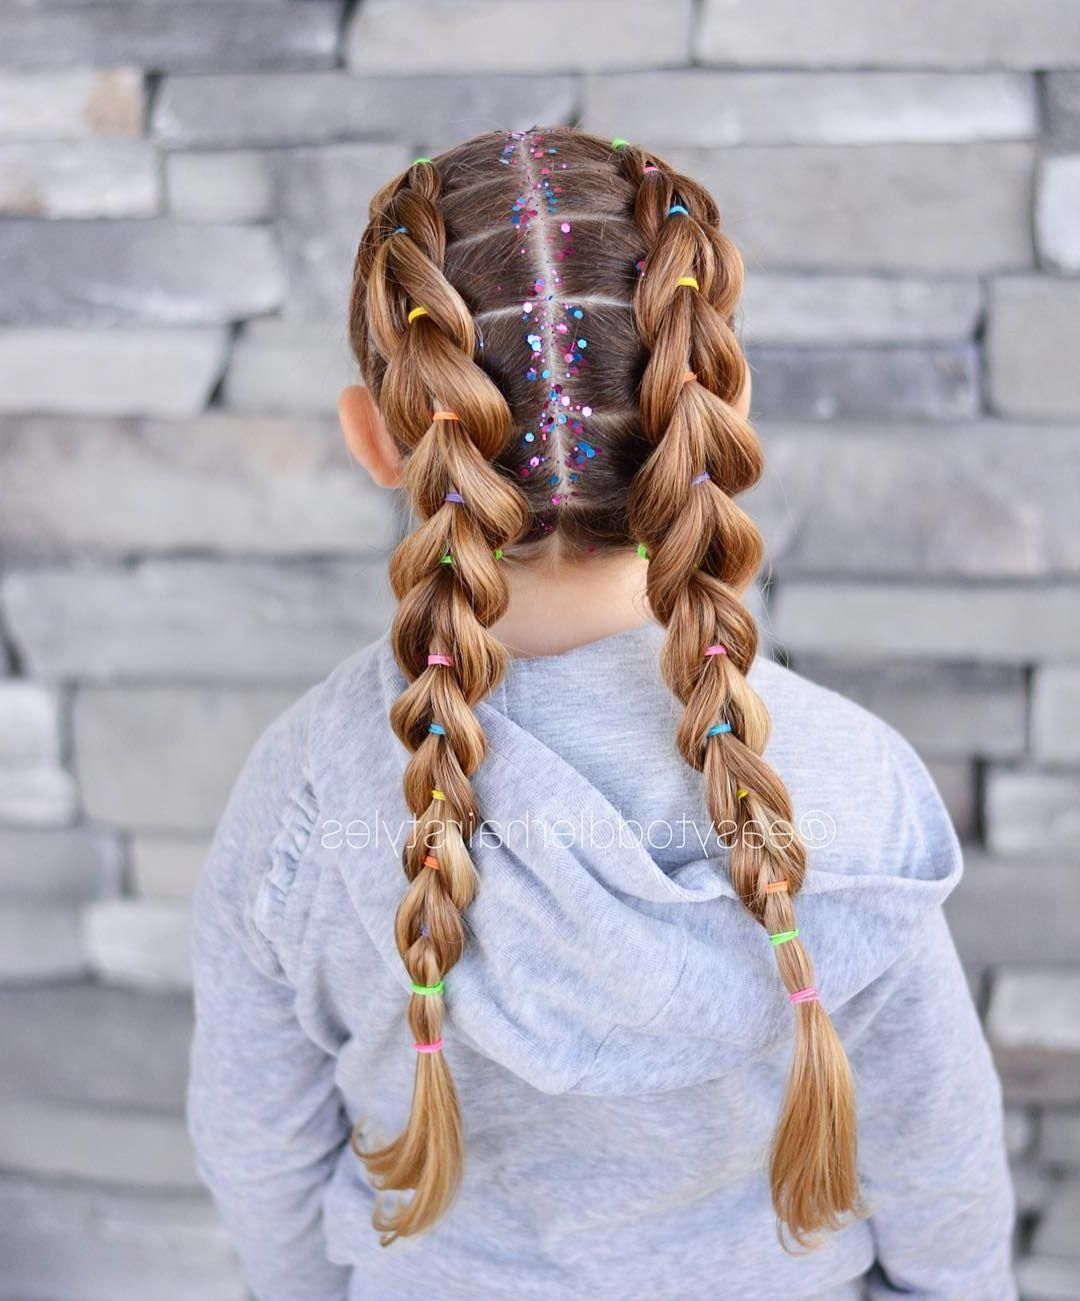 25 easy wacky hairstyles for school girl, below, i have